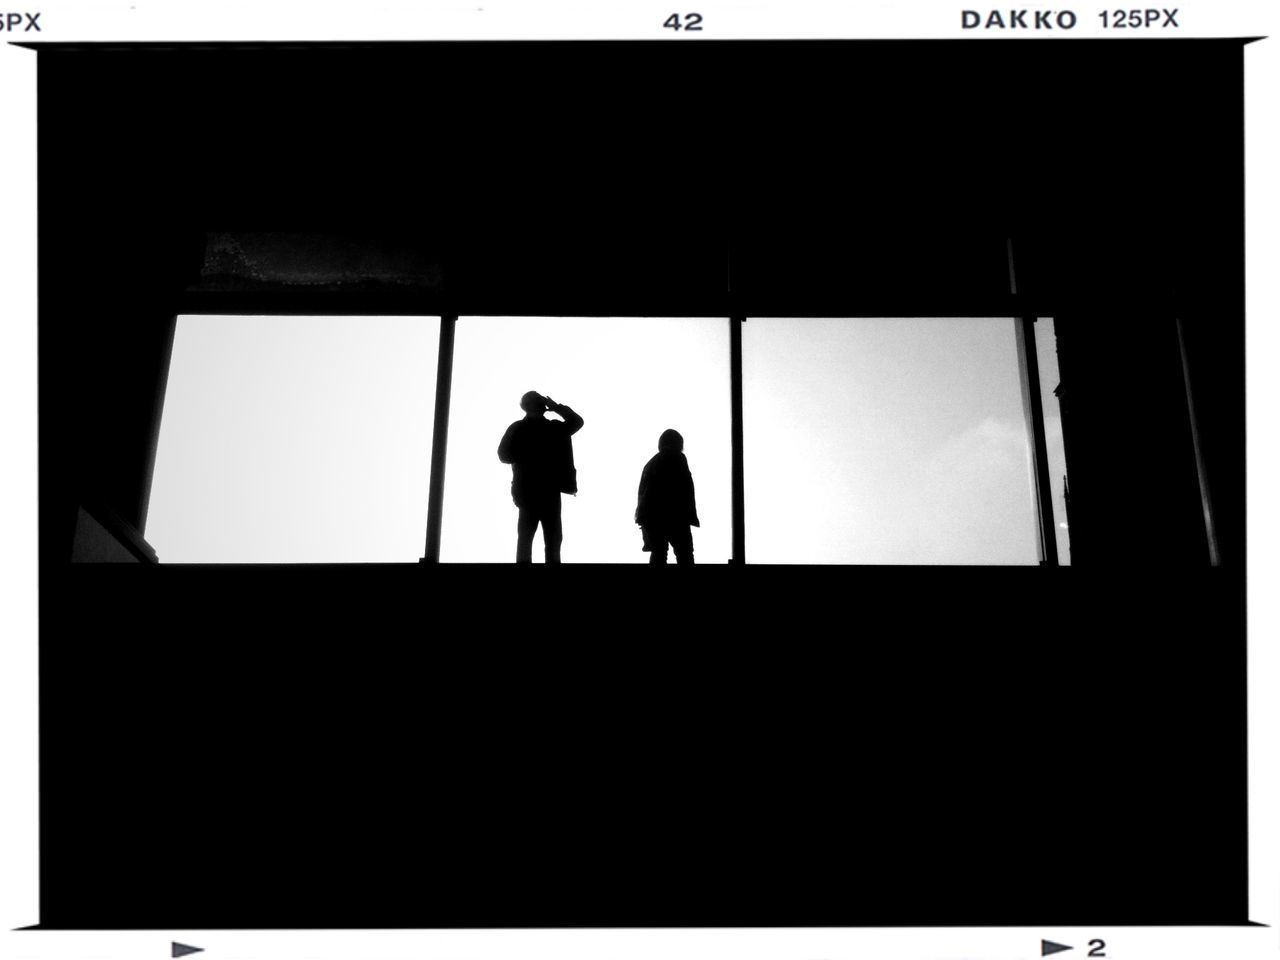 Low angle view of two silhouette people against window